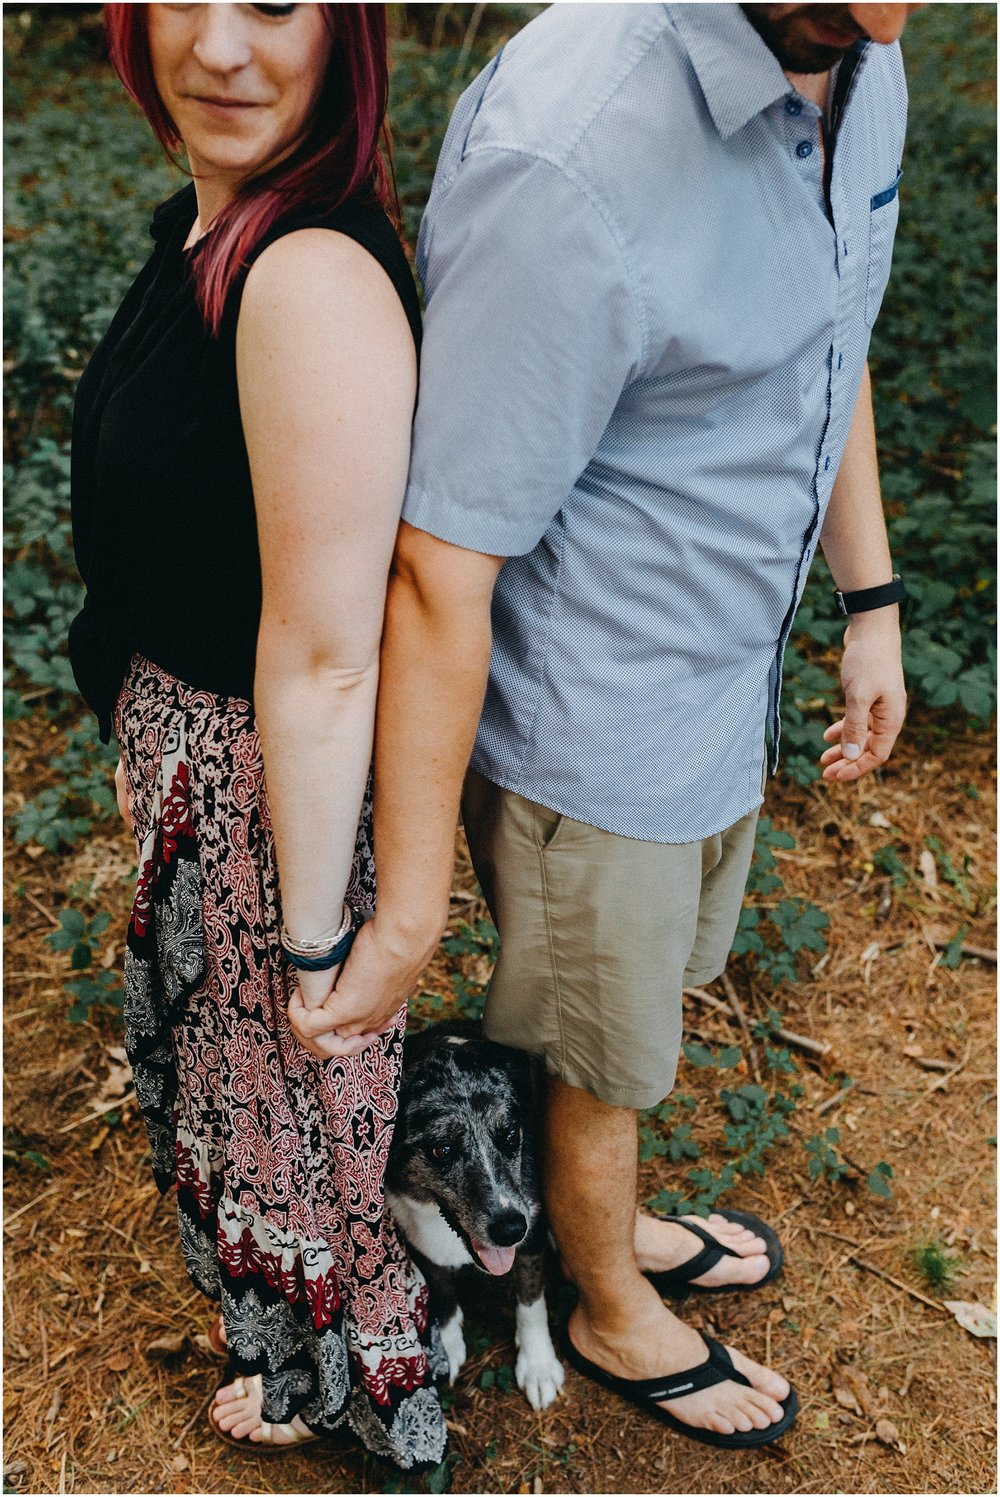 lifestyle-anniversary-engagement-photo session-rv-camping-road trip-vintage trailer-camping-outdoor photos_0248.jpg